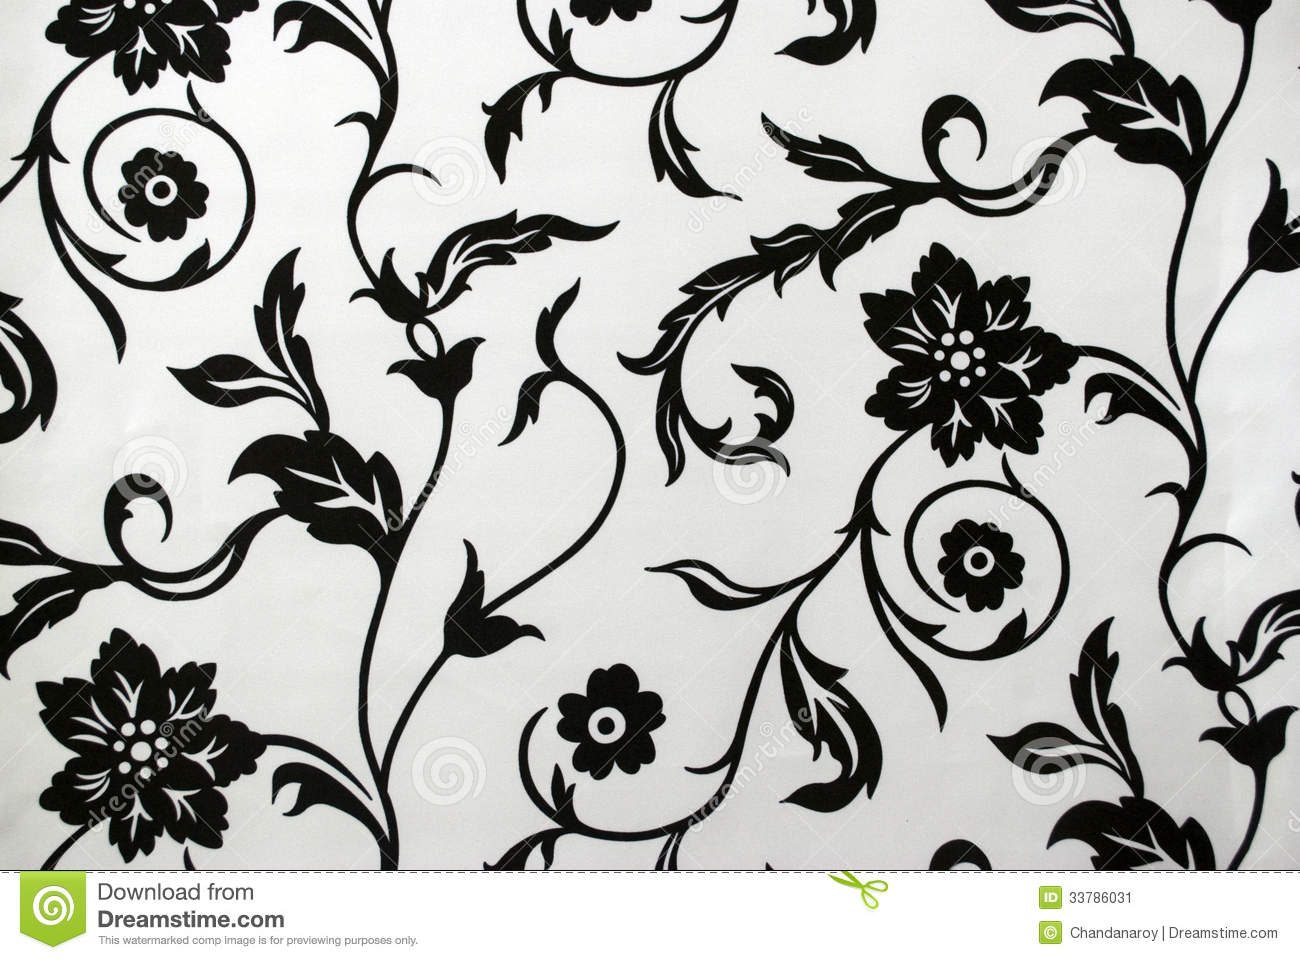 Decorative wallpaper pattern in black and white stock image image decorative wallpaper pattern in black and white stock image image of page artistic 33786031 mightylinksfo